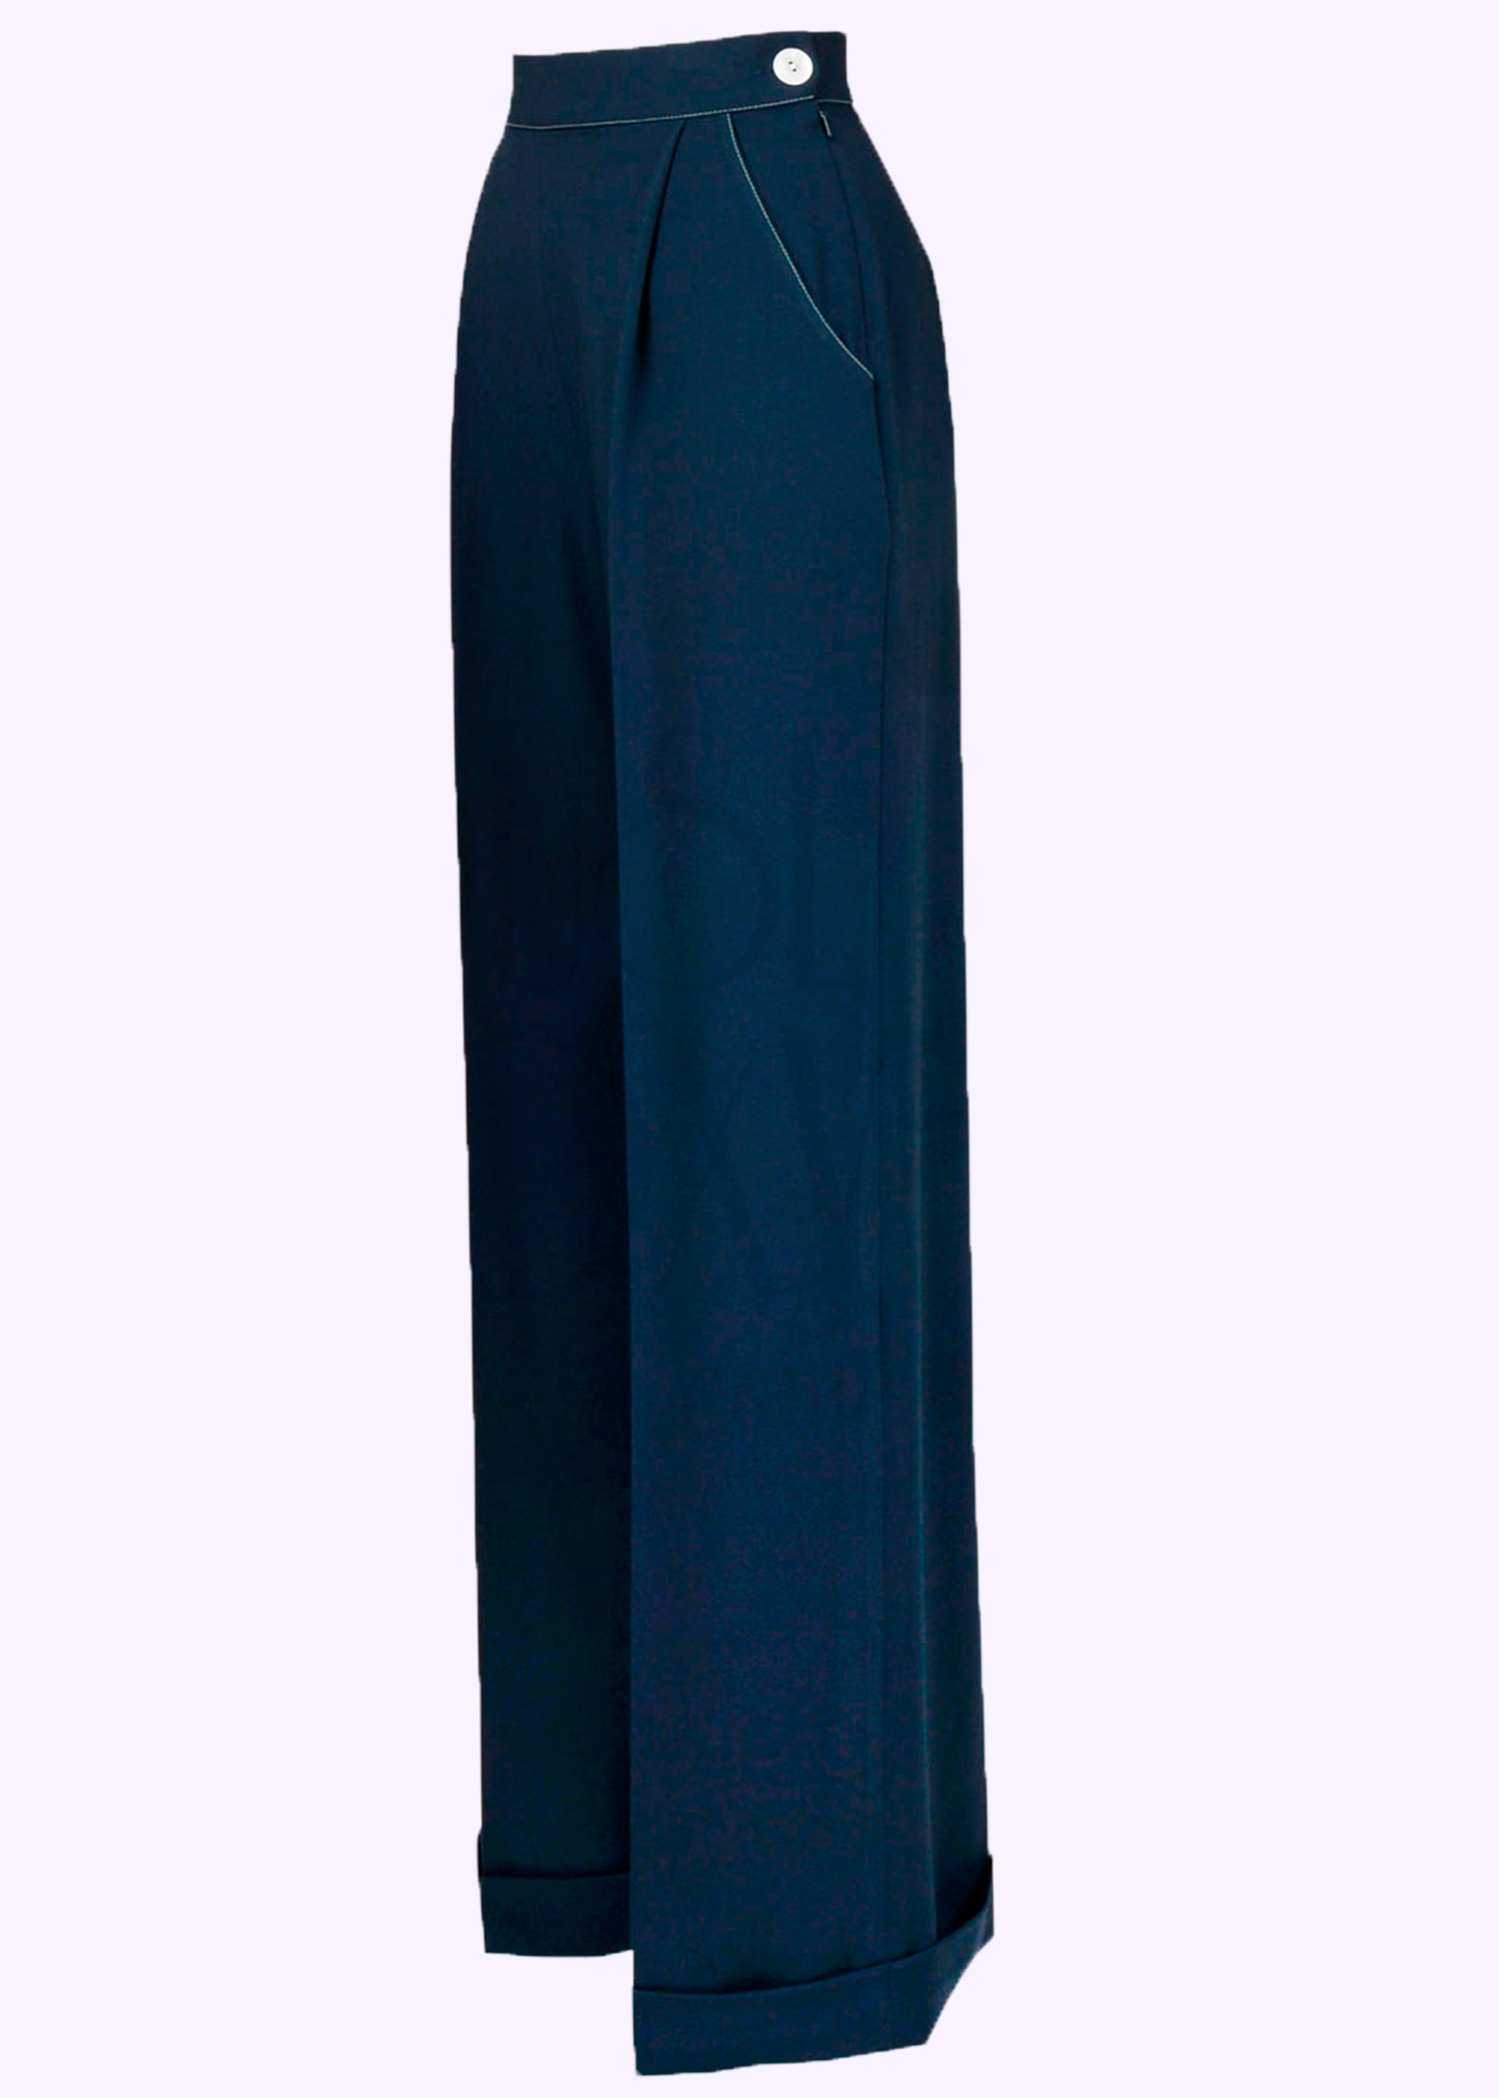 1940s style pants with wide legs in navy blue from The House Of Foxy